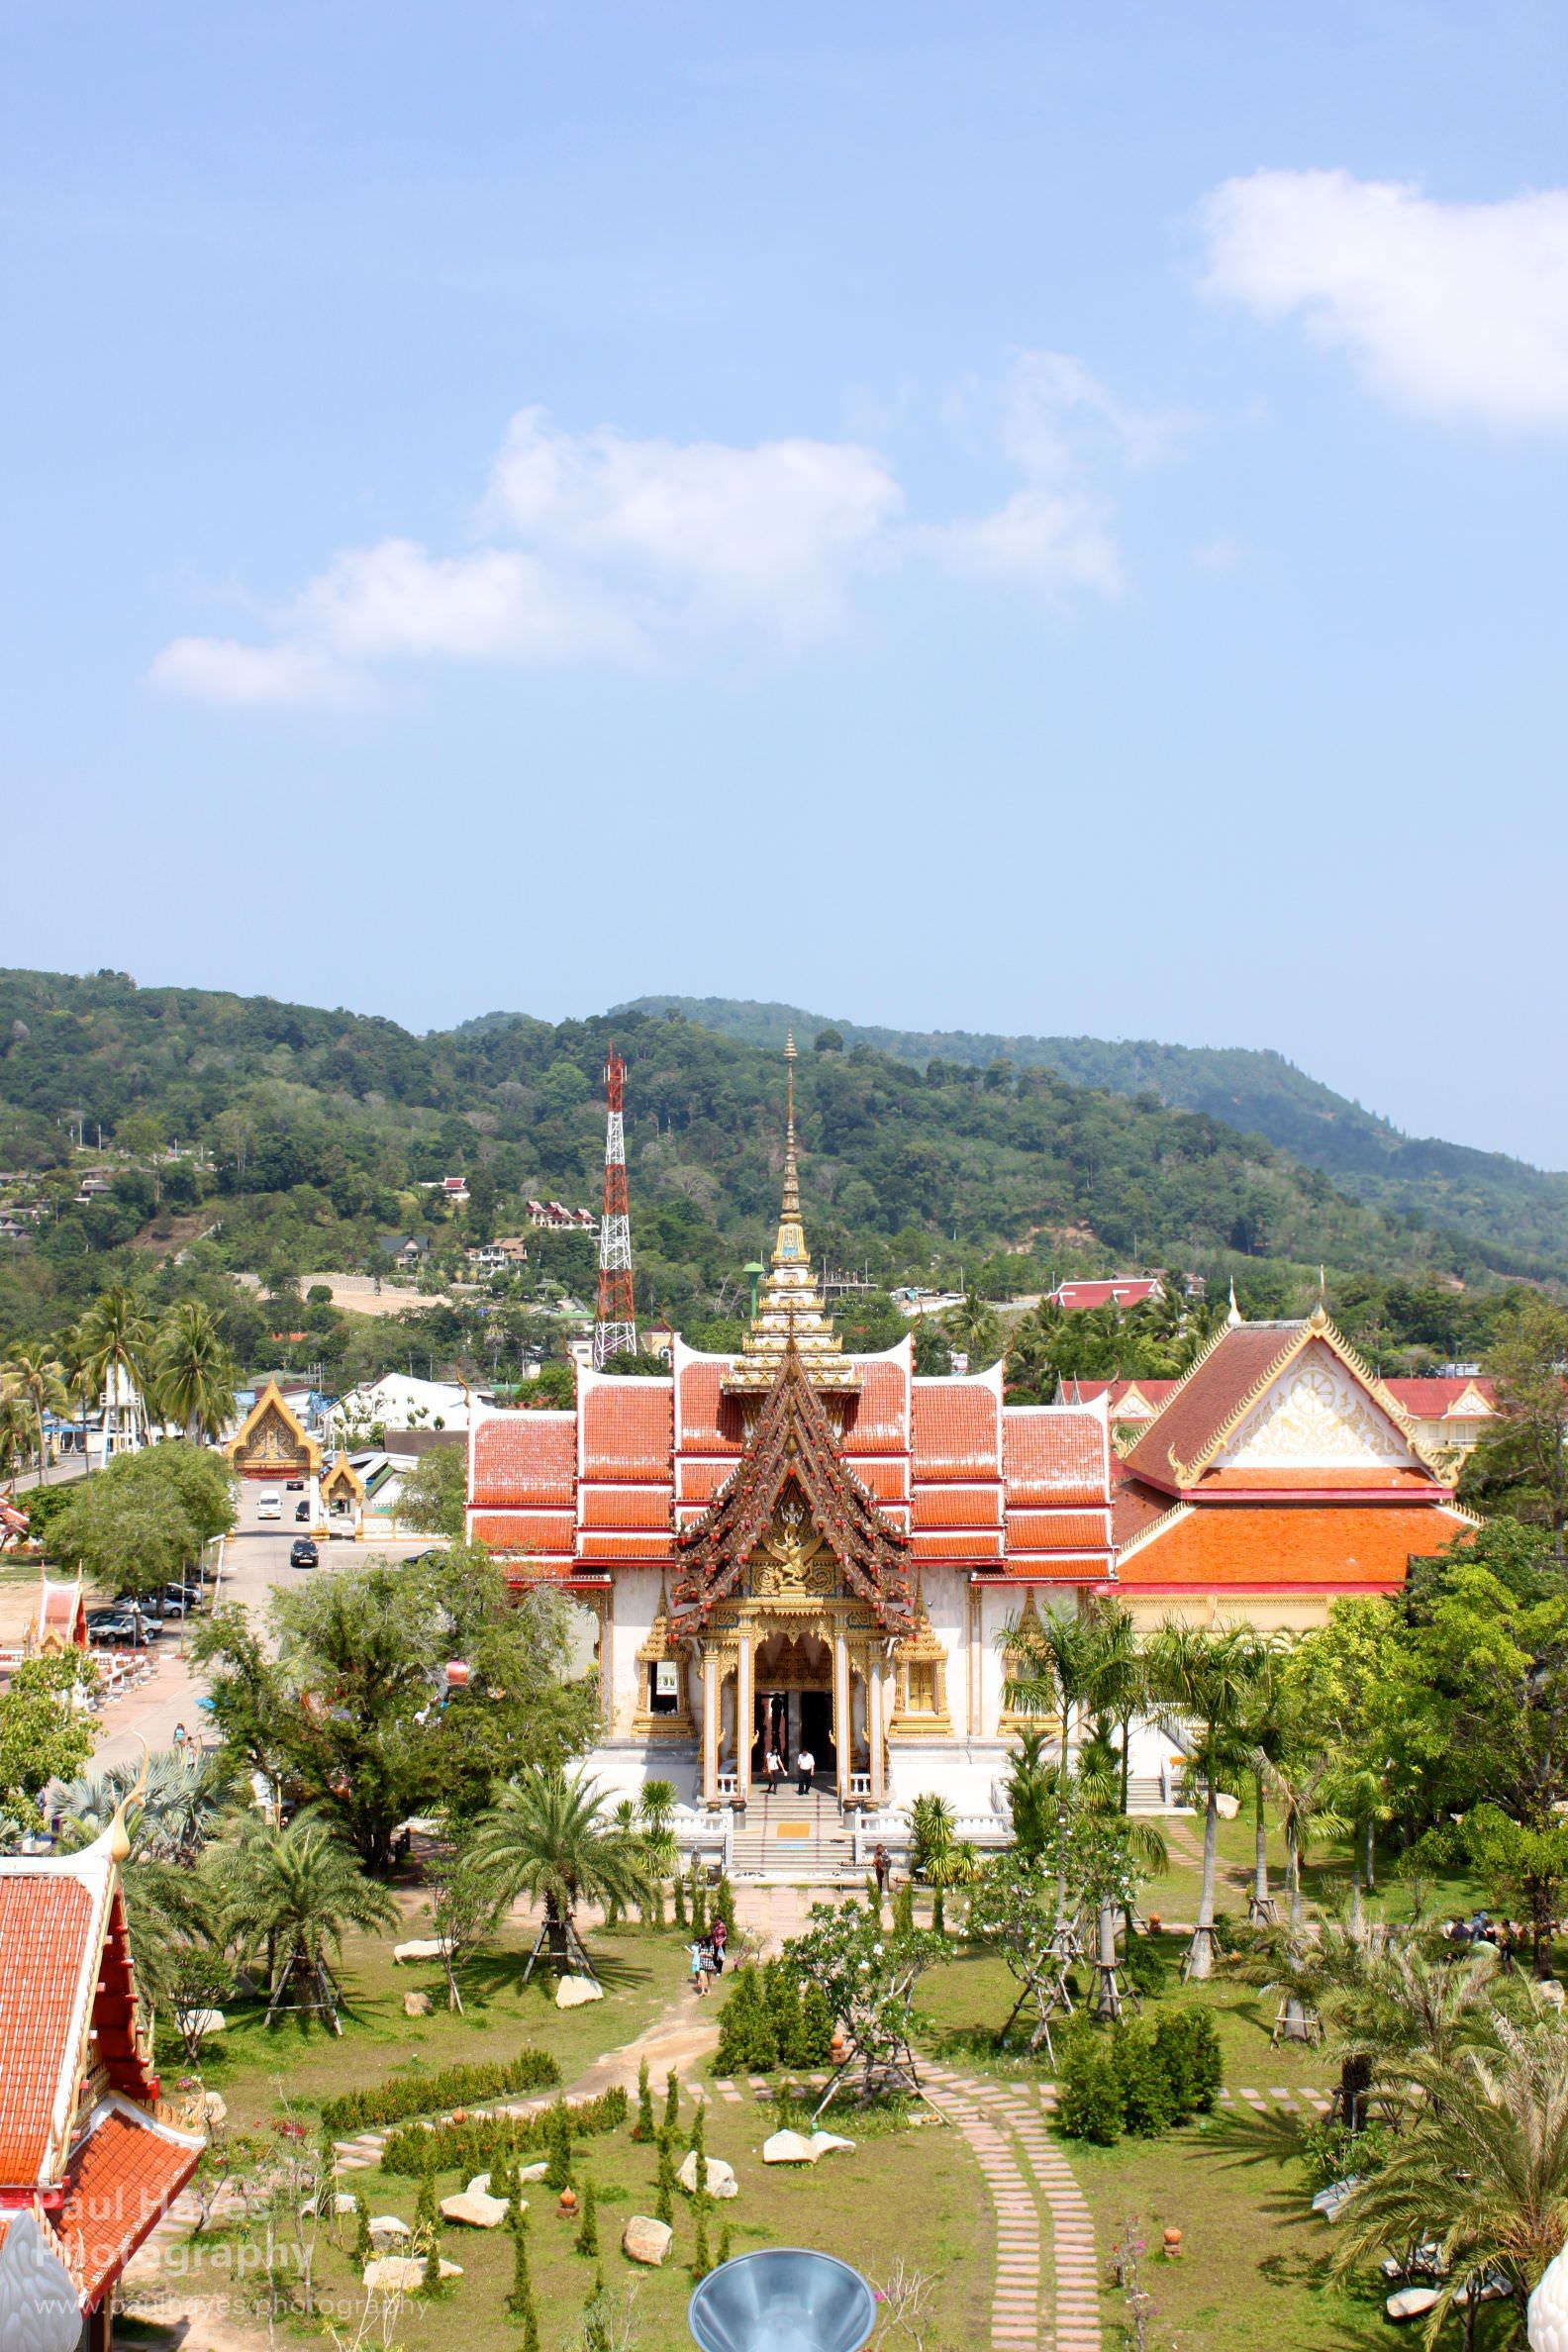 Drive to Wat Chalong, Big Buddha and Leam Promthep – Phuket, Thailand